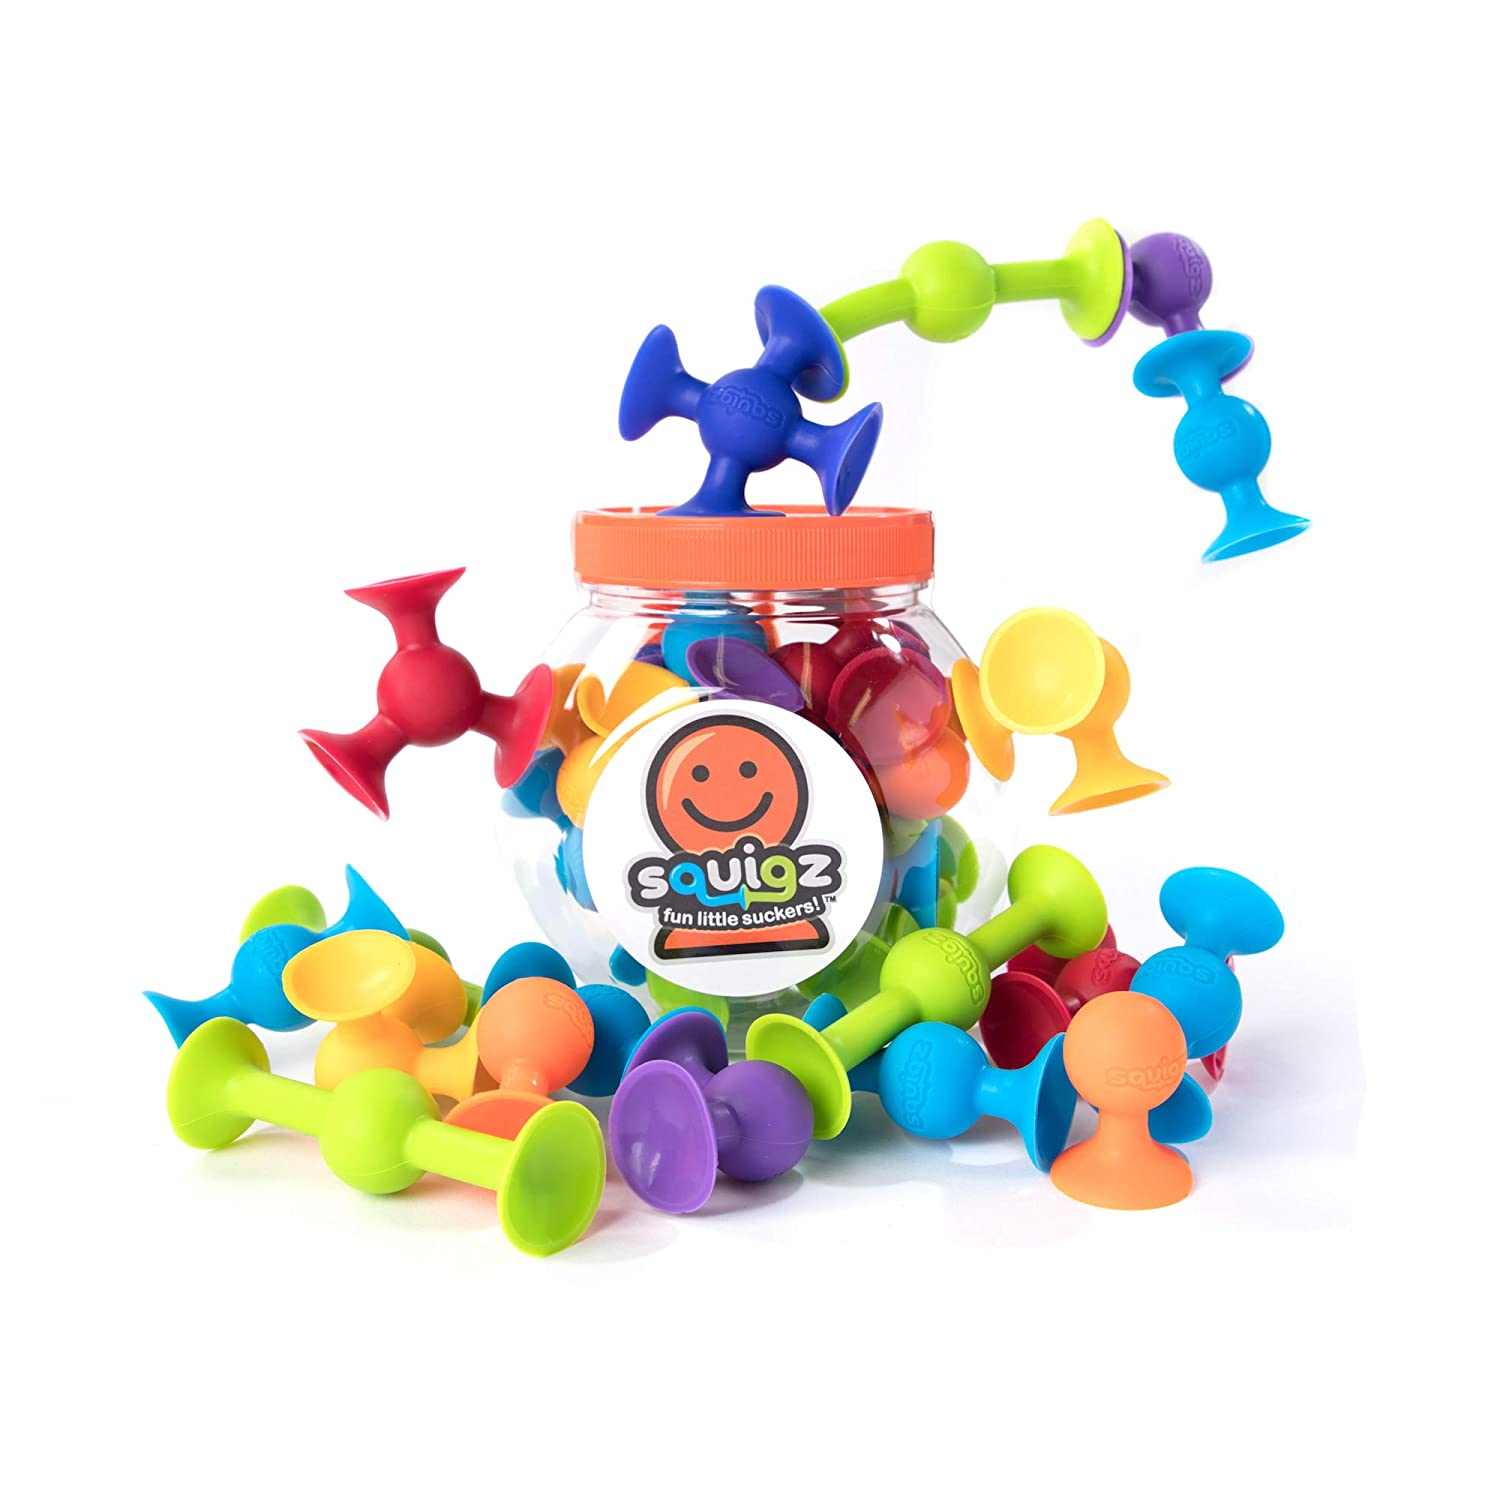 Fat Brain Toys Squigz Limited Edition 18 Piece Set Fat Brain Toy Co.